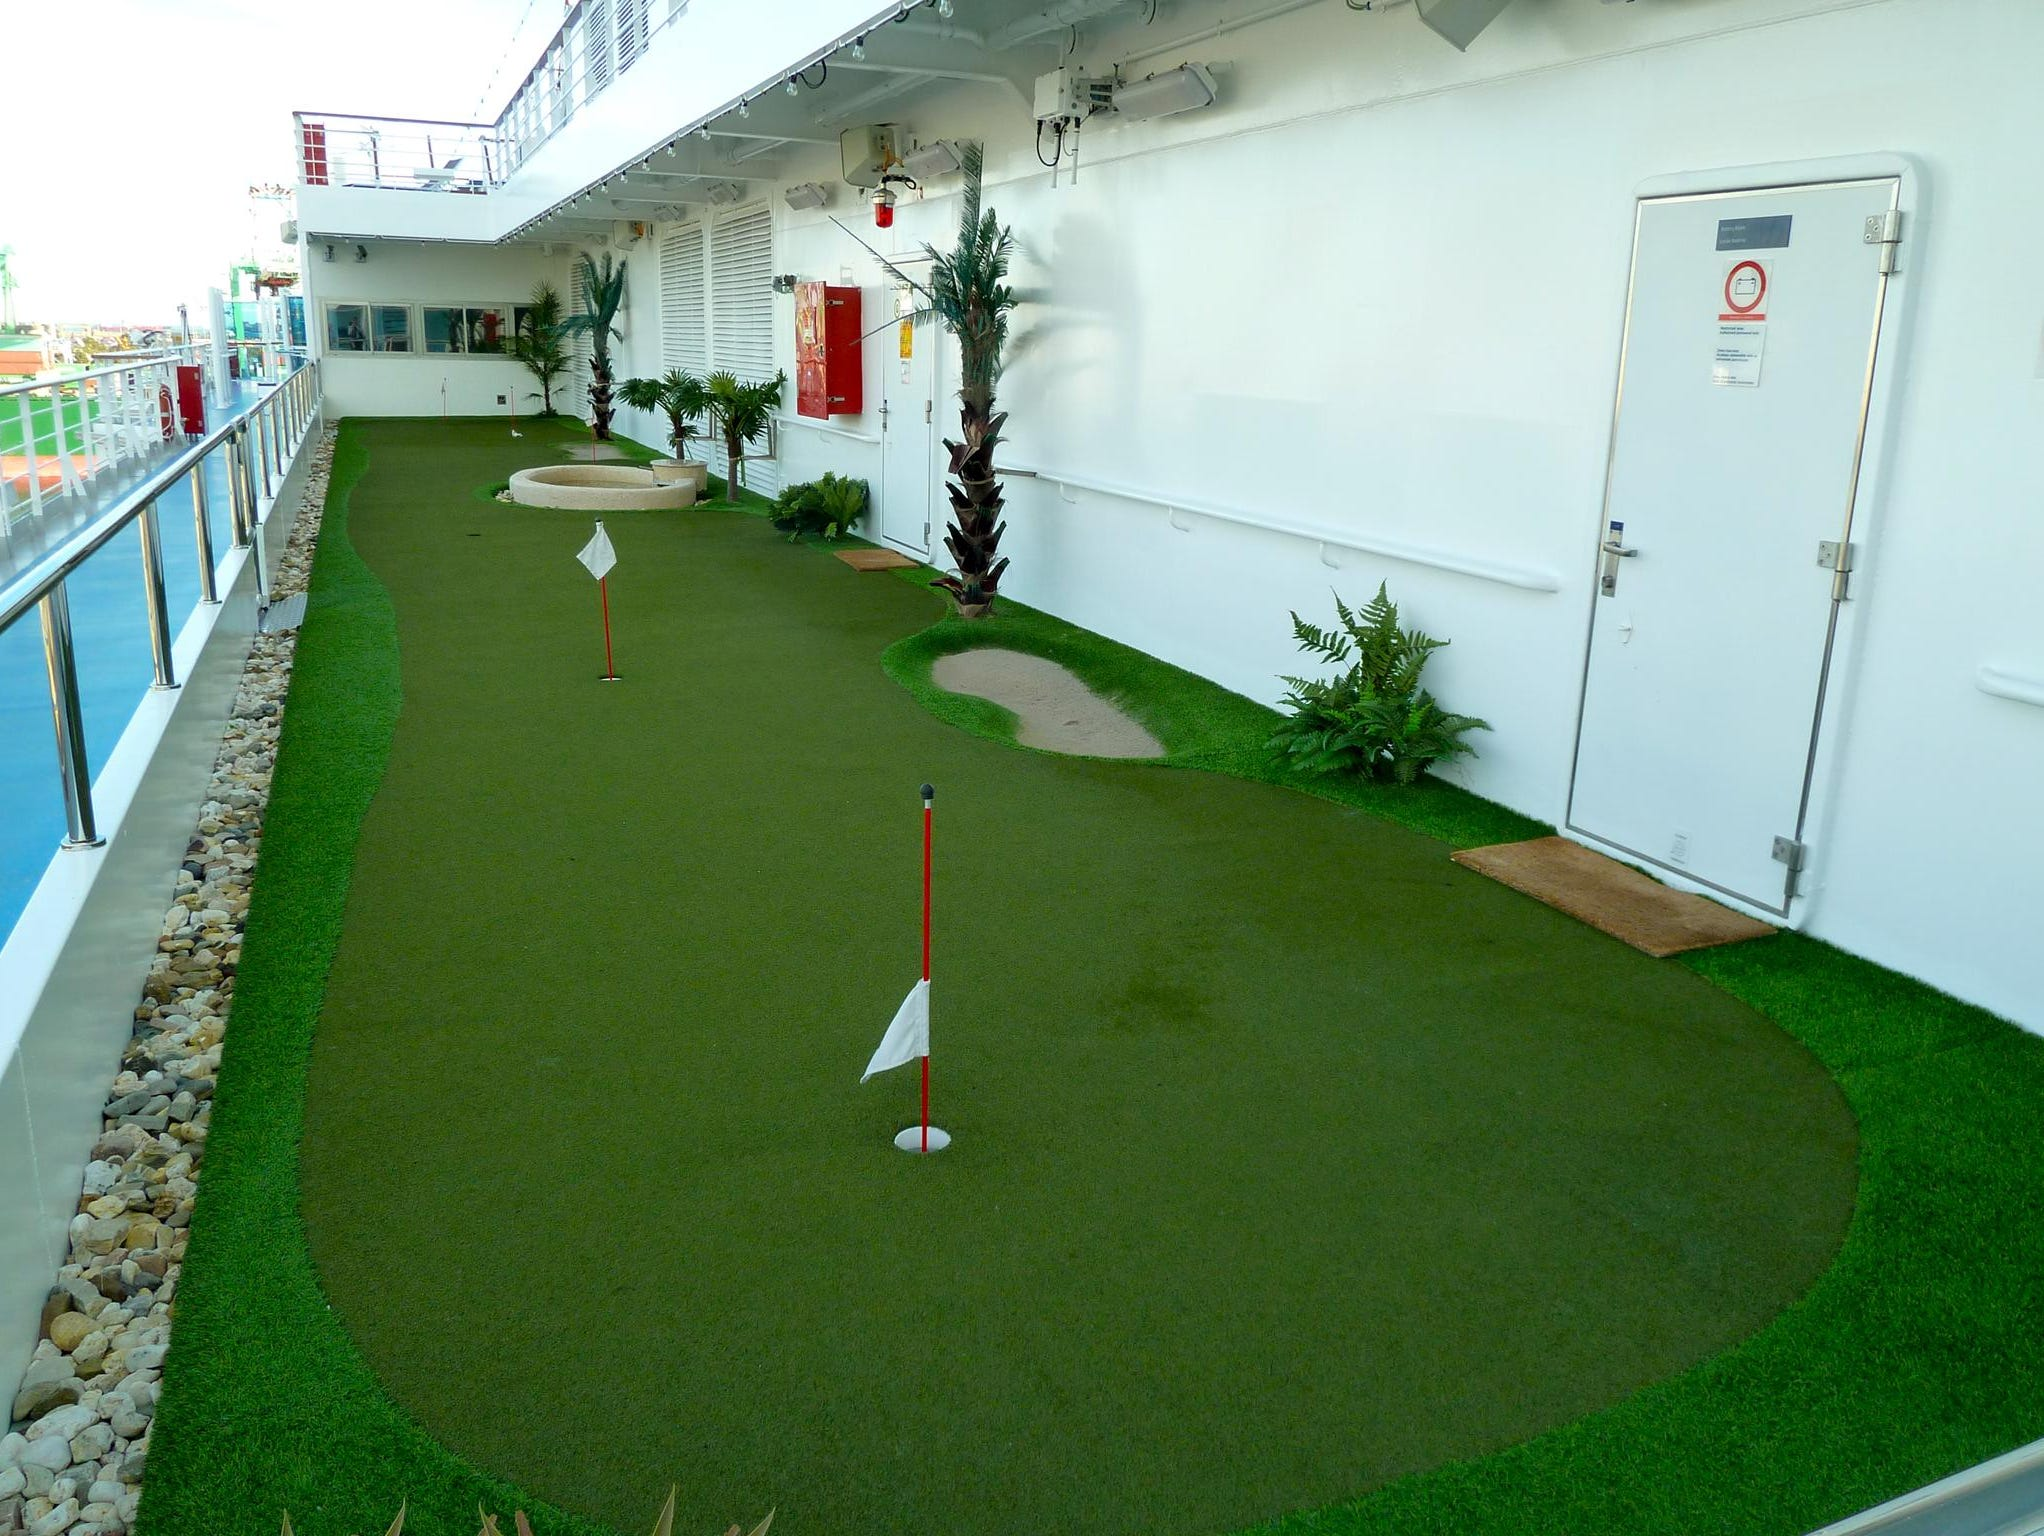 On the starboard side of Magnolia Deck, there is a mini-golf course adjacent to a virtual golf simulator.